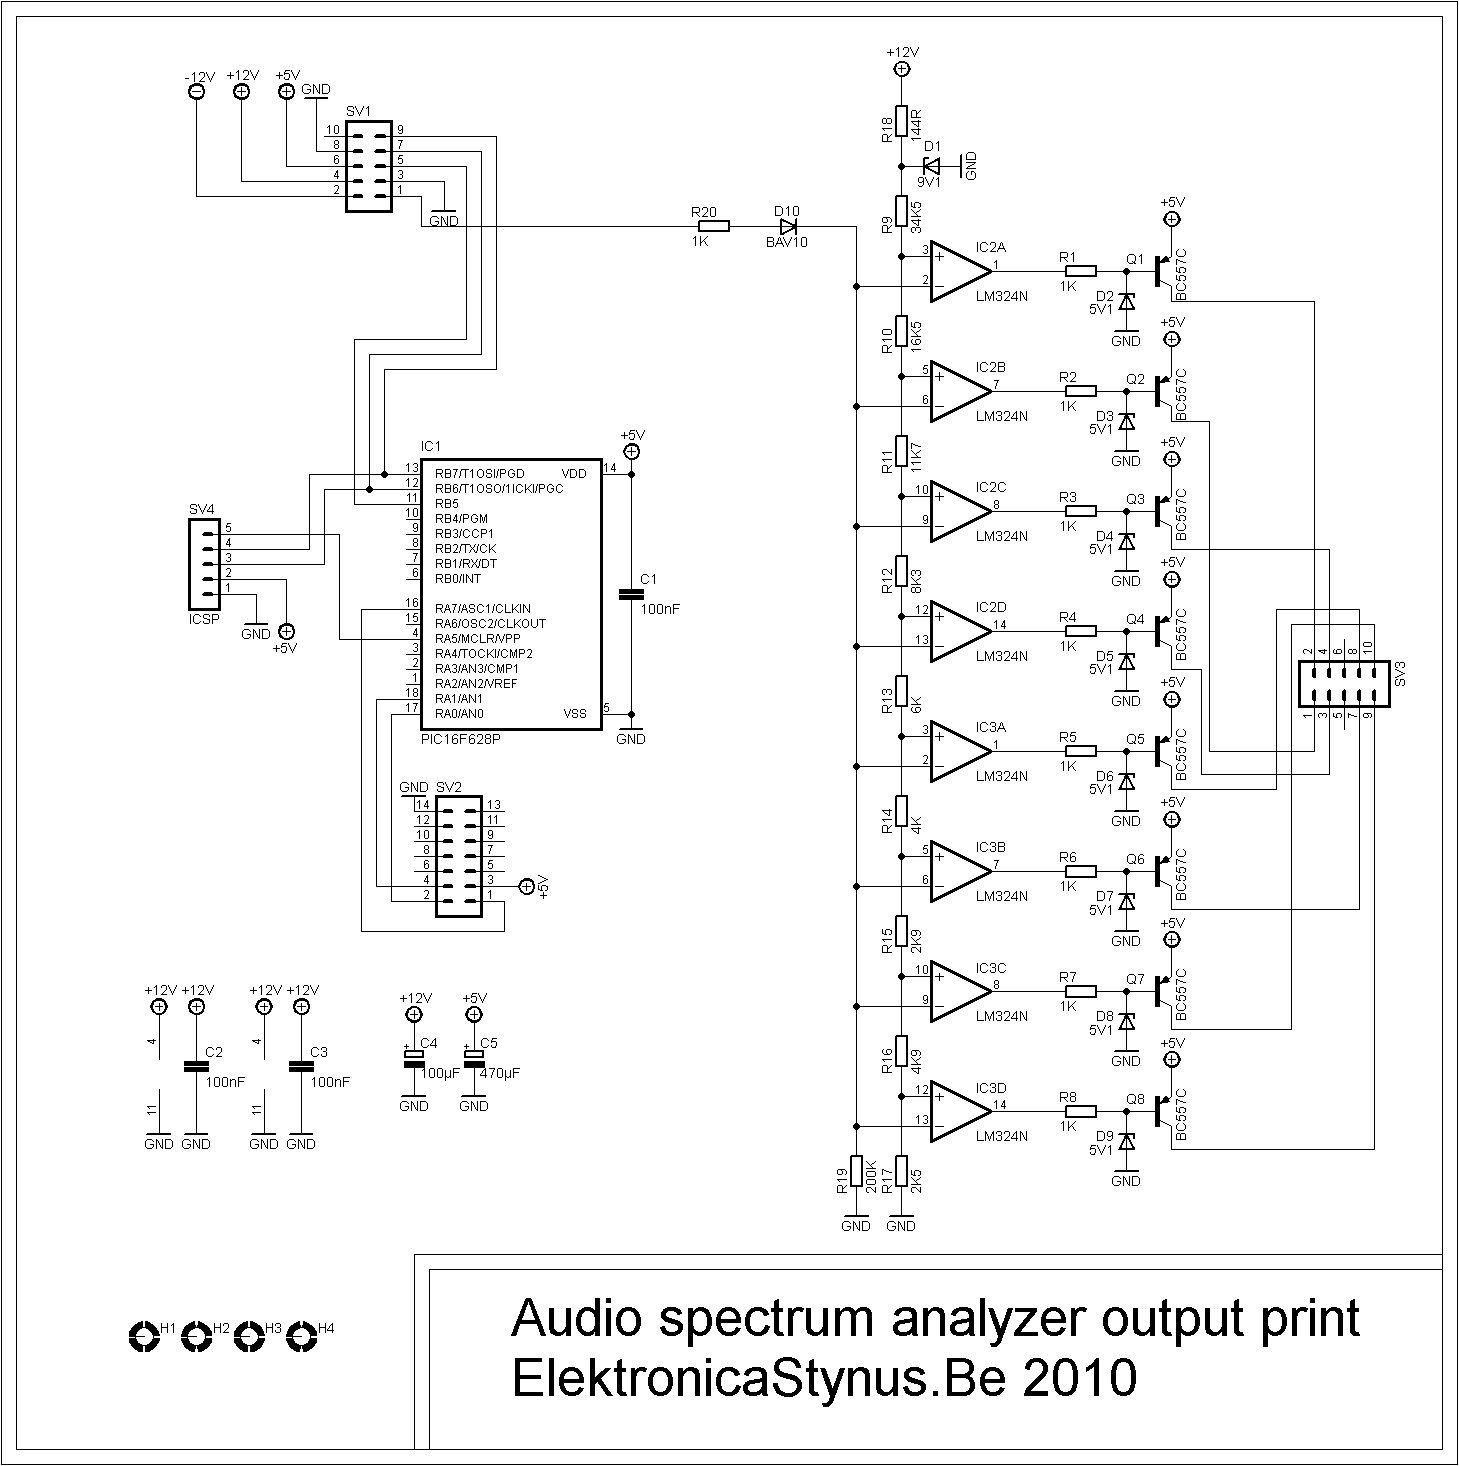 Audio Spectrum Analyzer – ElektronicaStynus